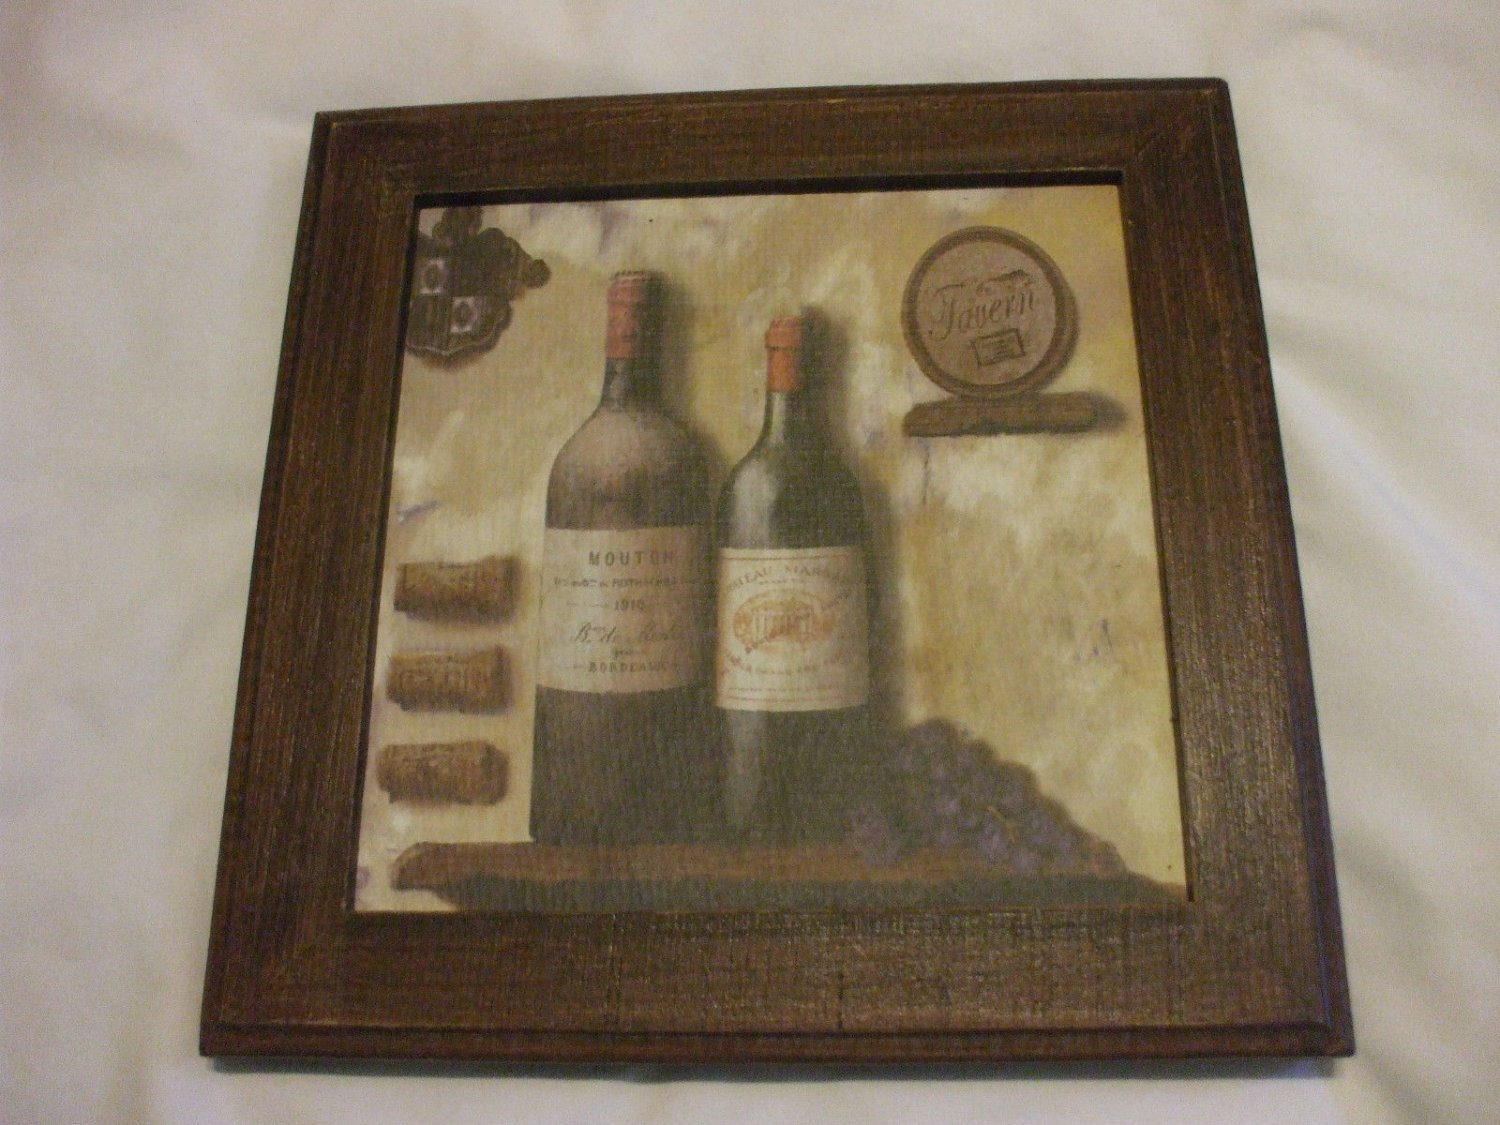 Shabby Chic Wine Bottles And Grapes Wooden Wall Hanging Picture Frame 7.5 Inch X 7.5 Inch